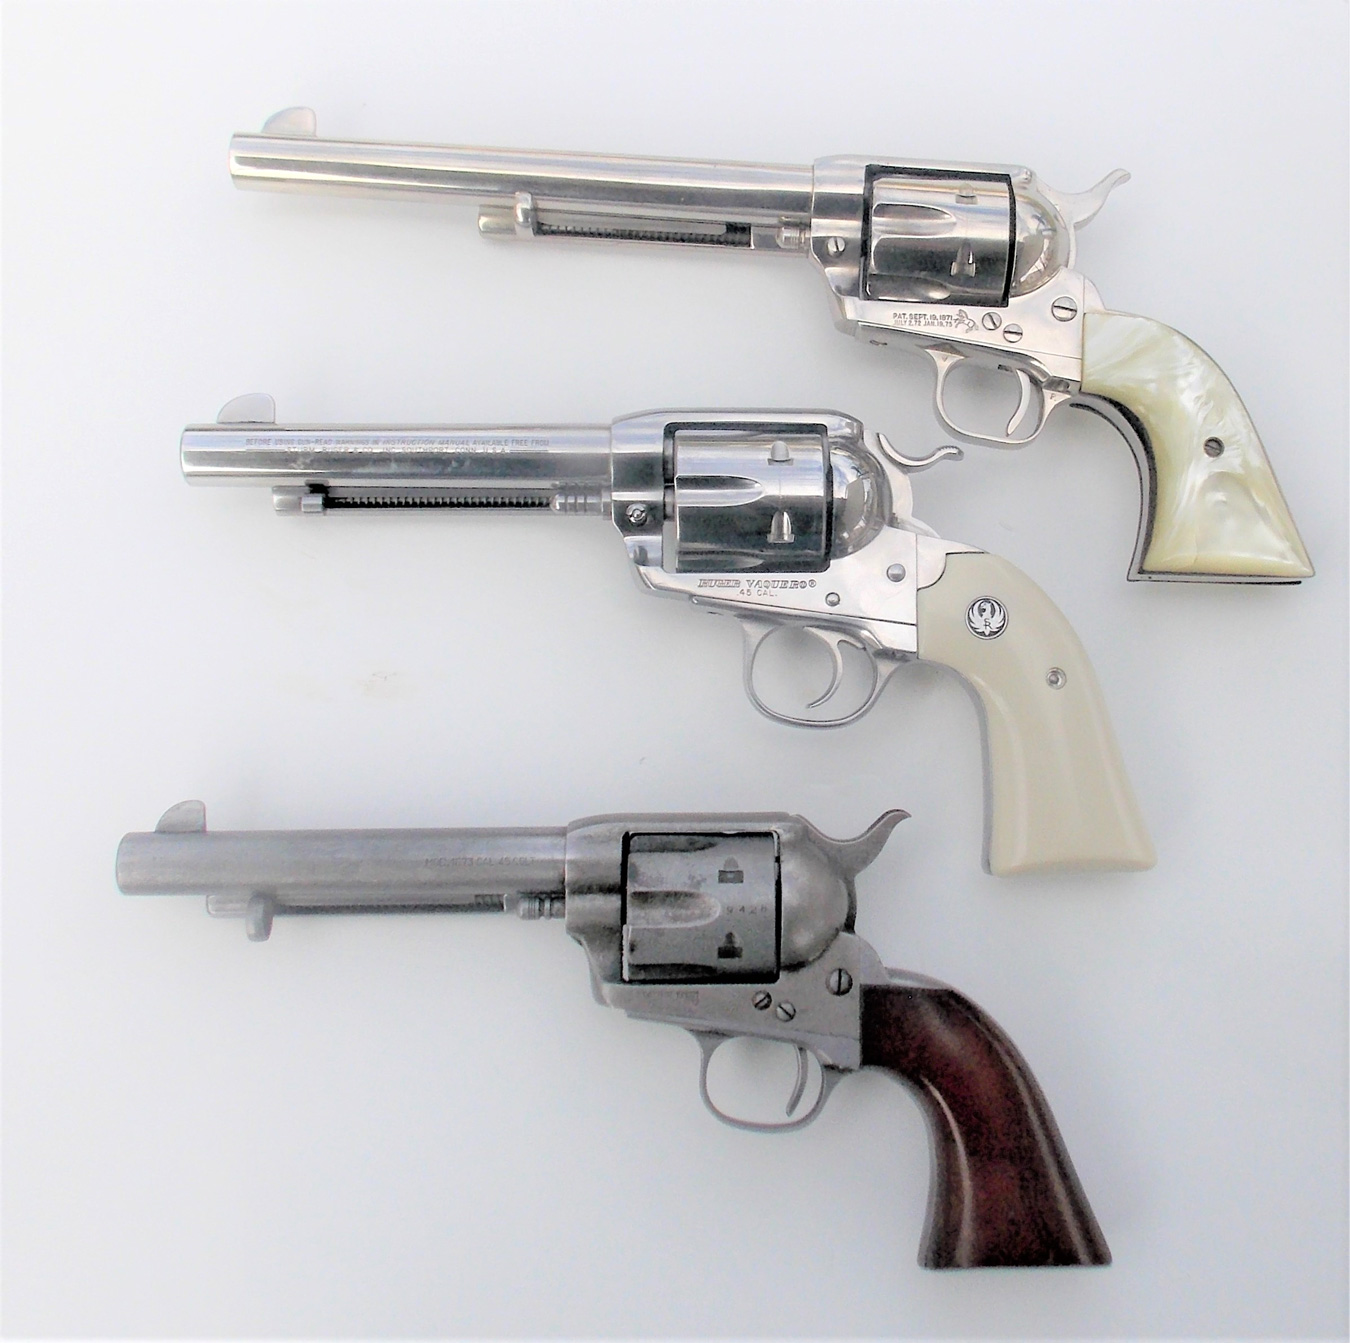 Colt, Ruger, and Cimarron single-action revolvers